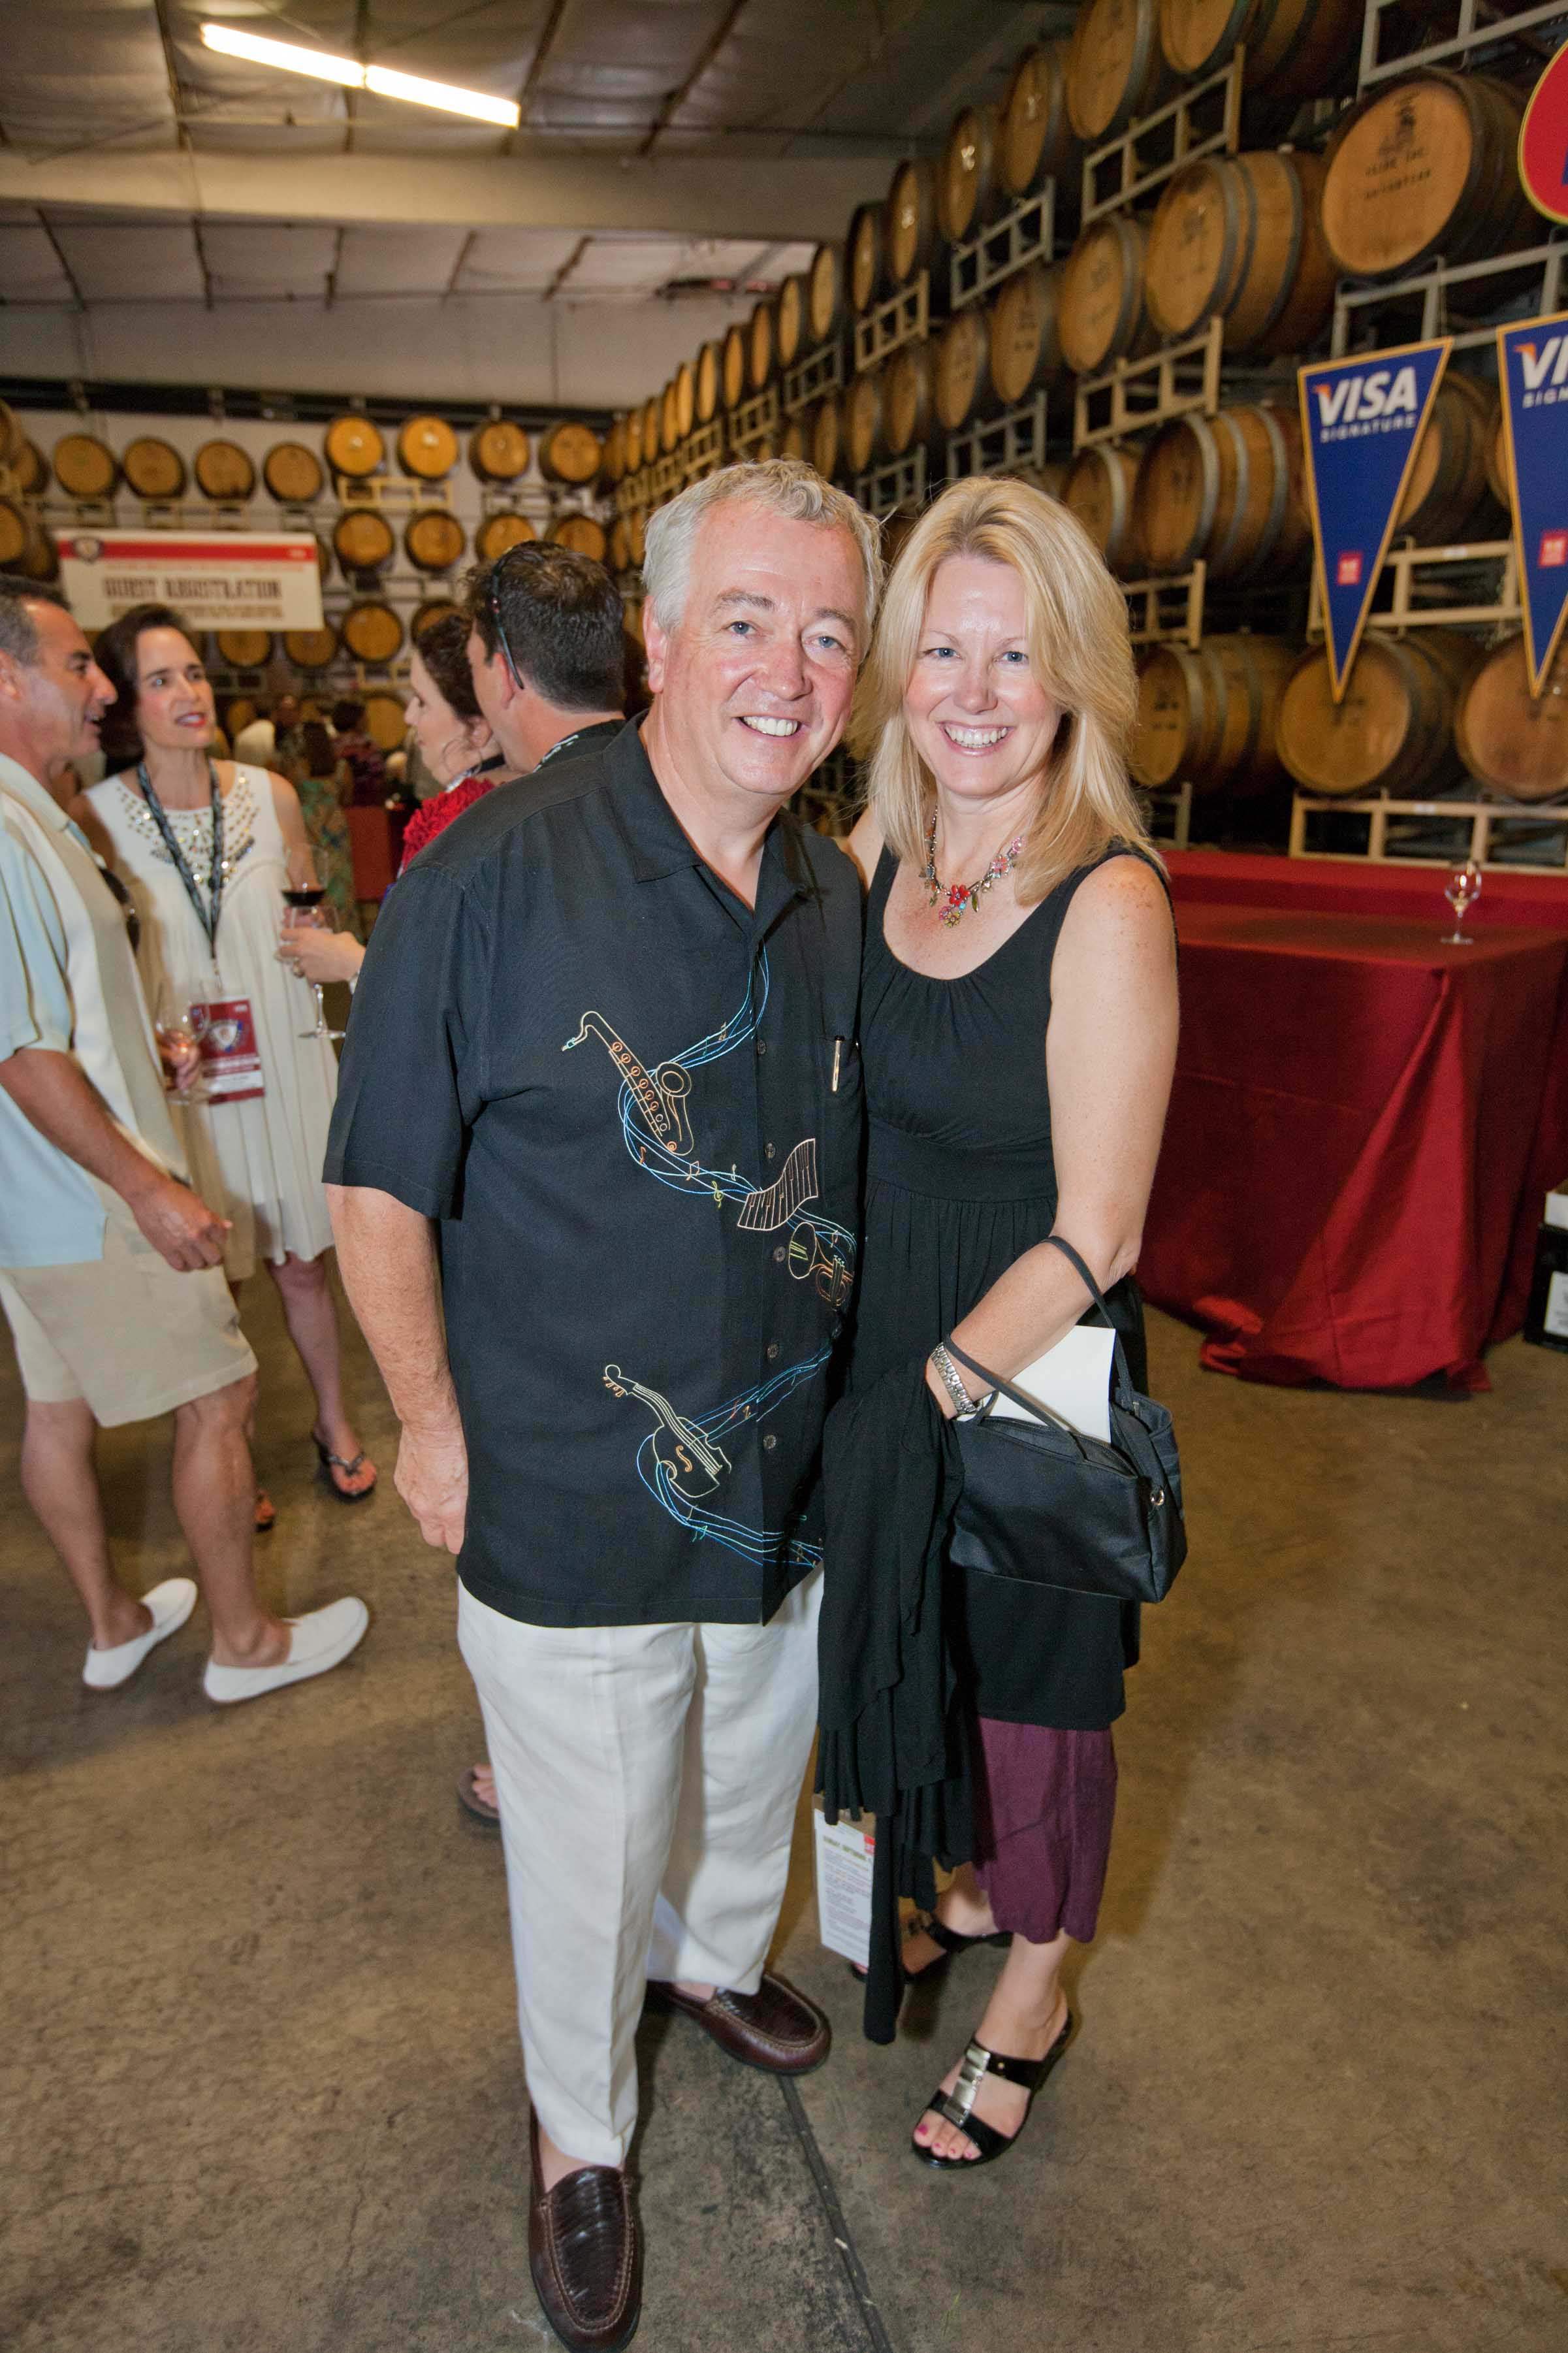 0100-SonomaWineAuction-110903